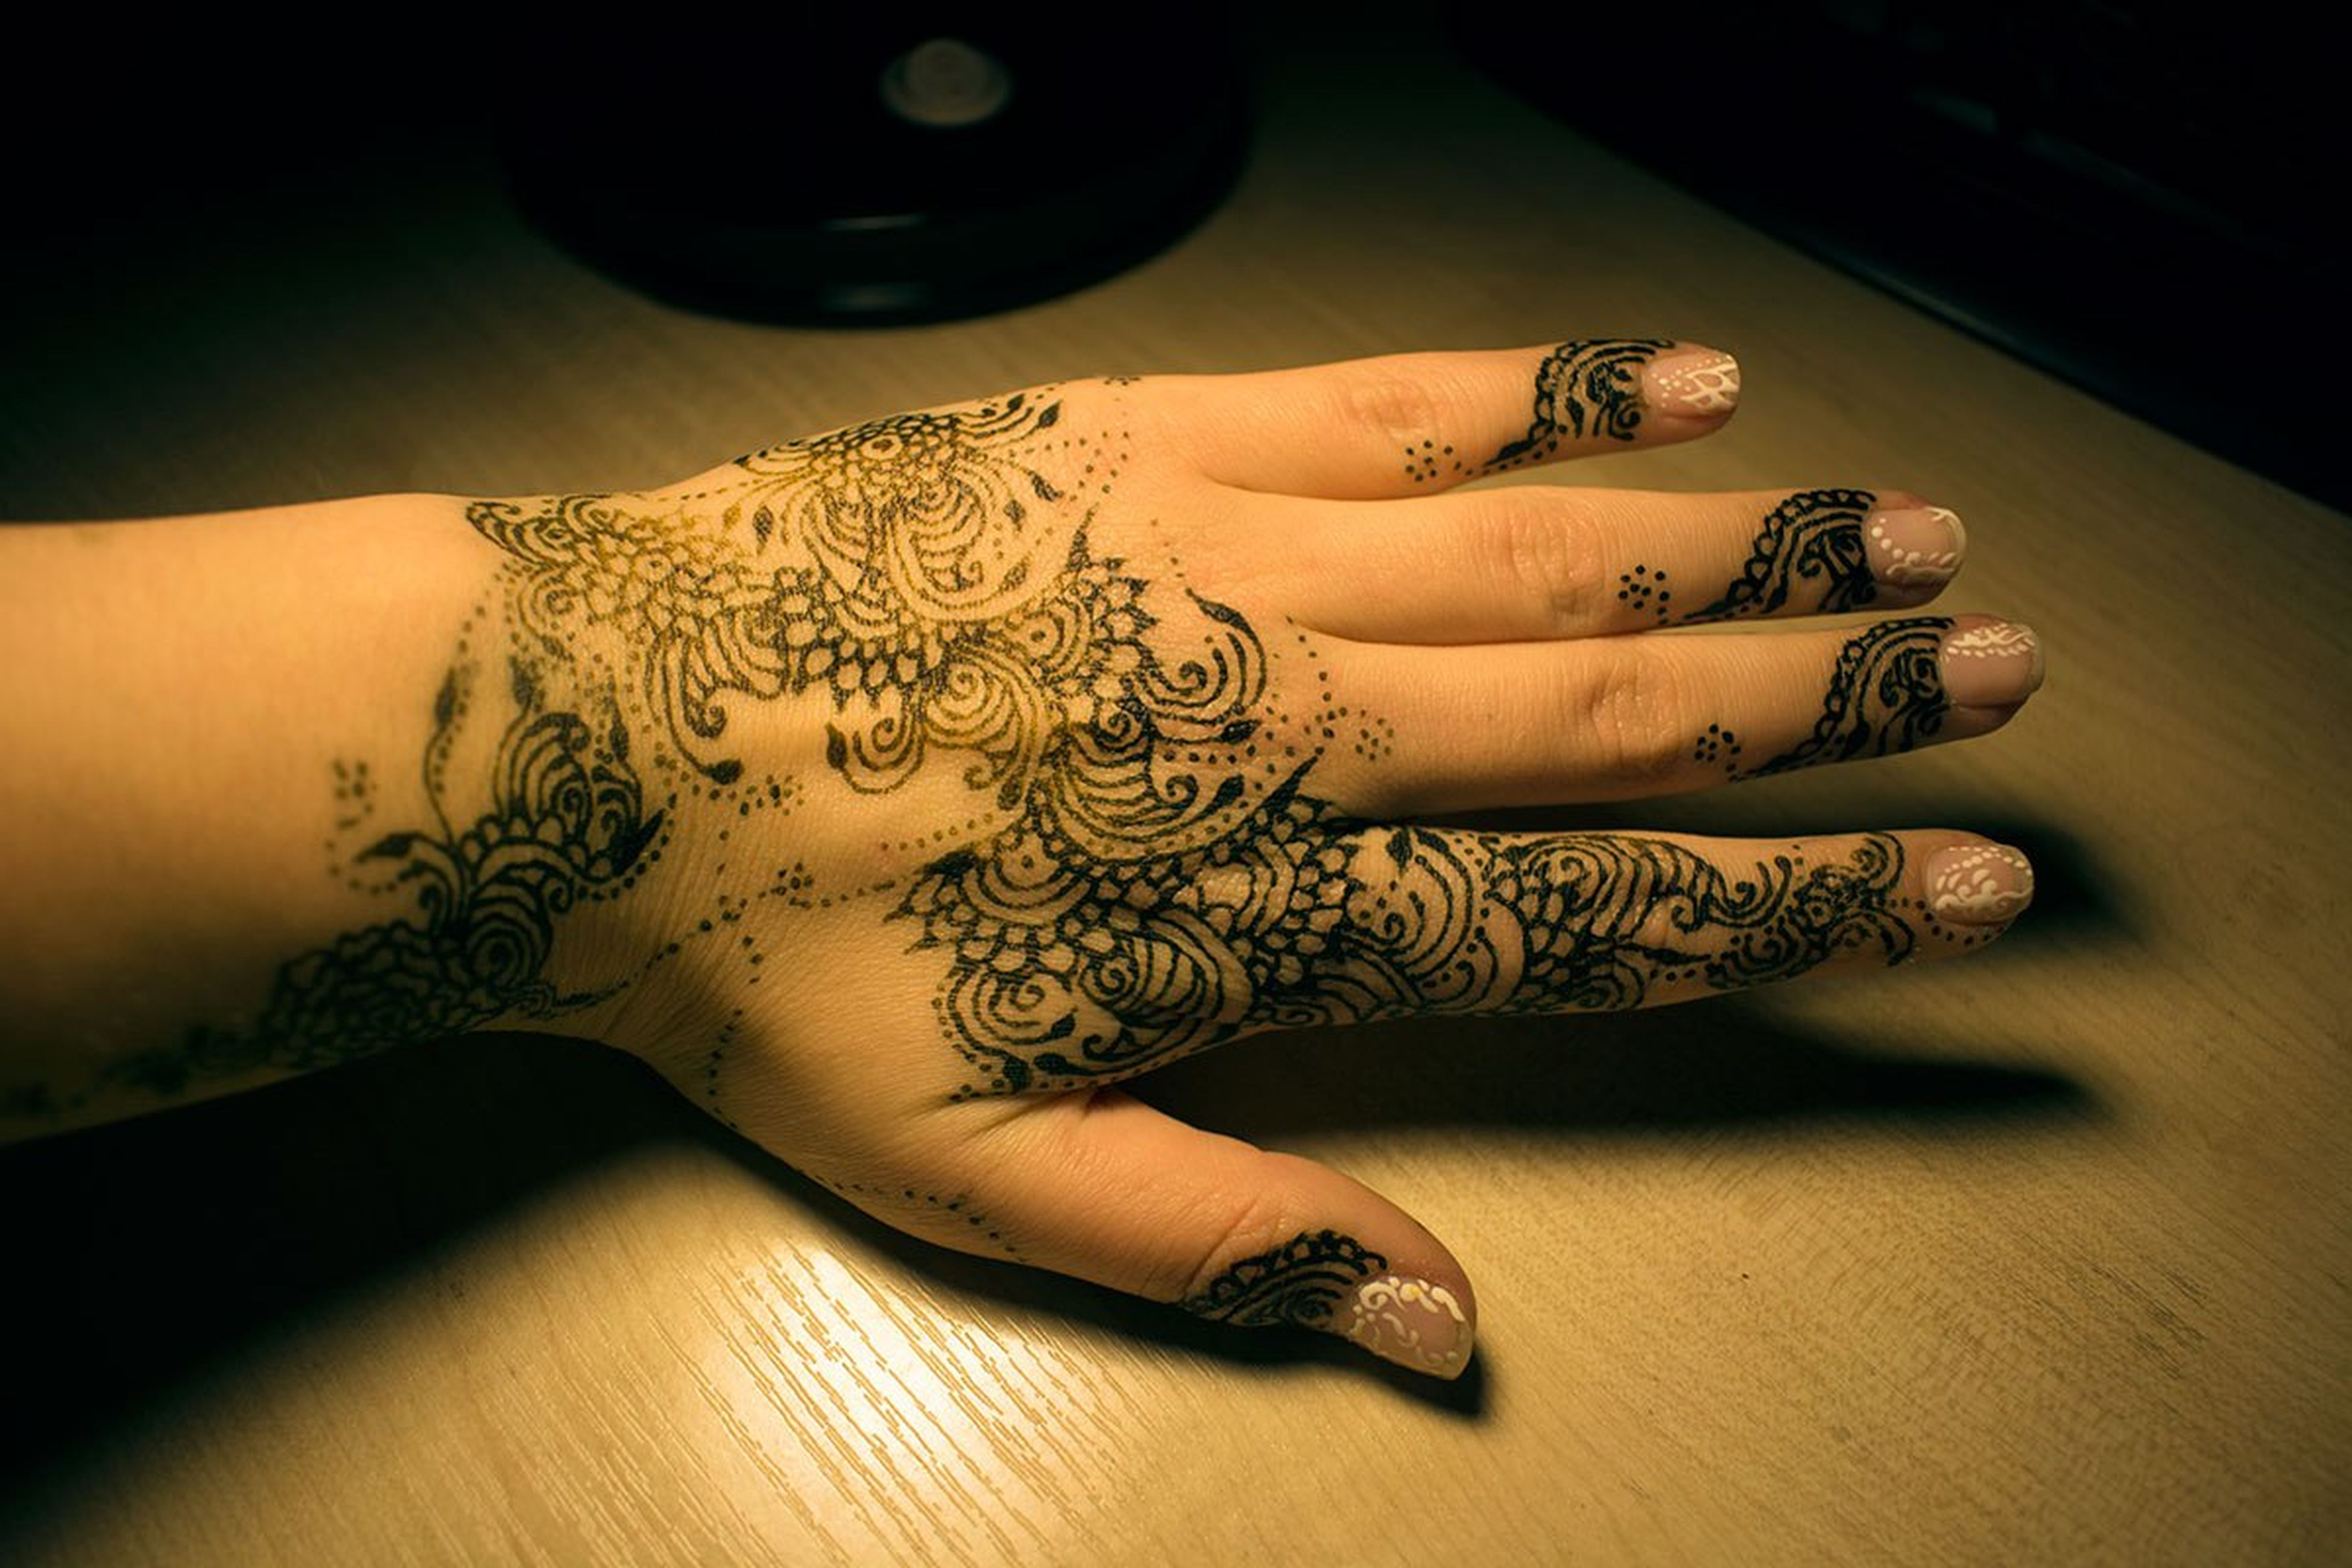 human hand, tattoo, art and craft, cultures, indoors, human body part, table, close-up, ink, one person, people